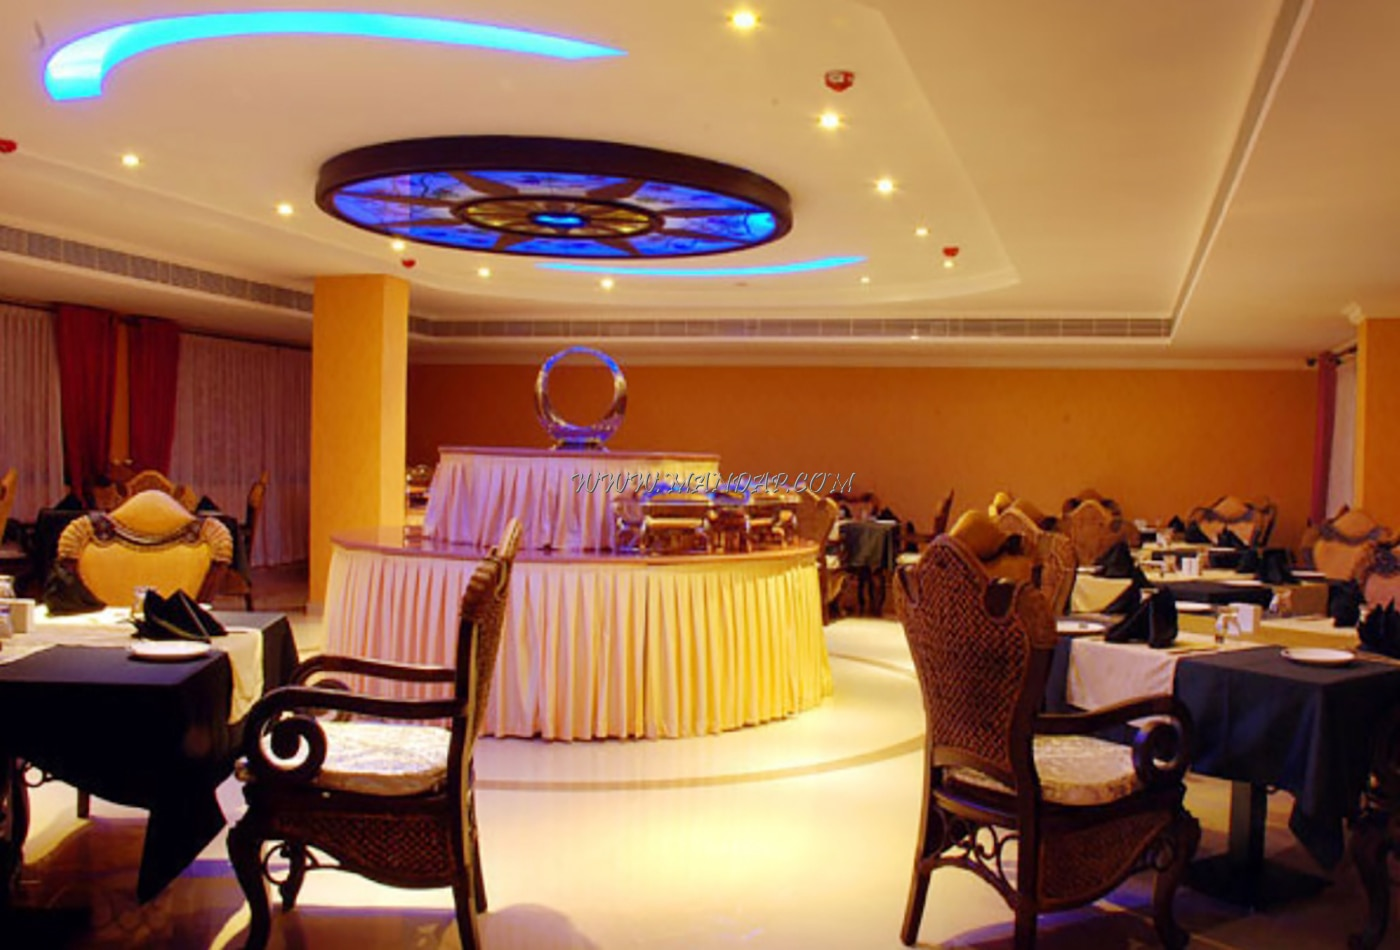 Find the availability of the Hotel Sea Pale Banquet Hall Crystal Bay (A/C) in Uliyakovil, Kollam and avail special offers